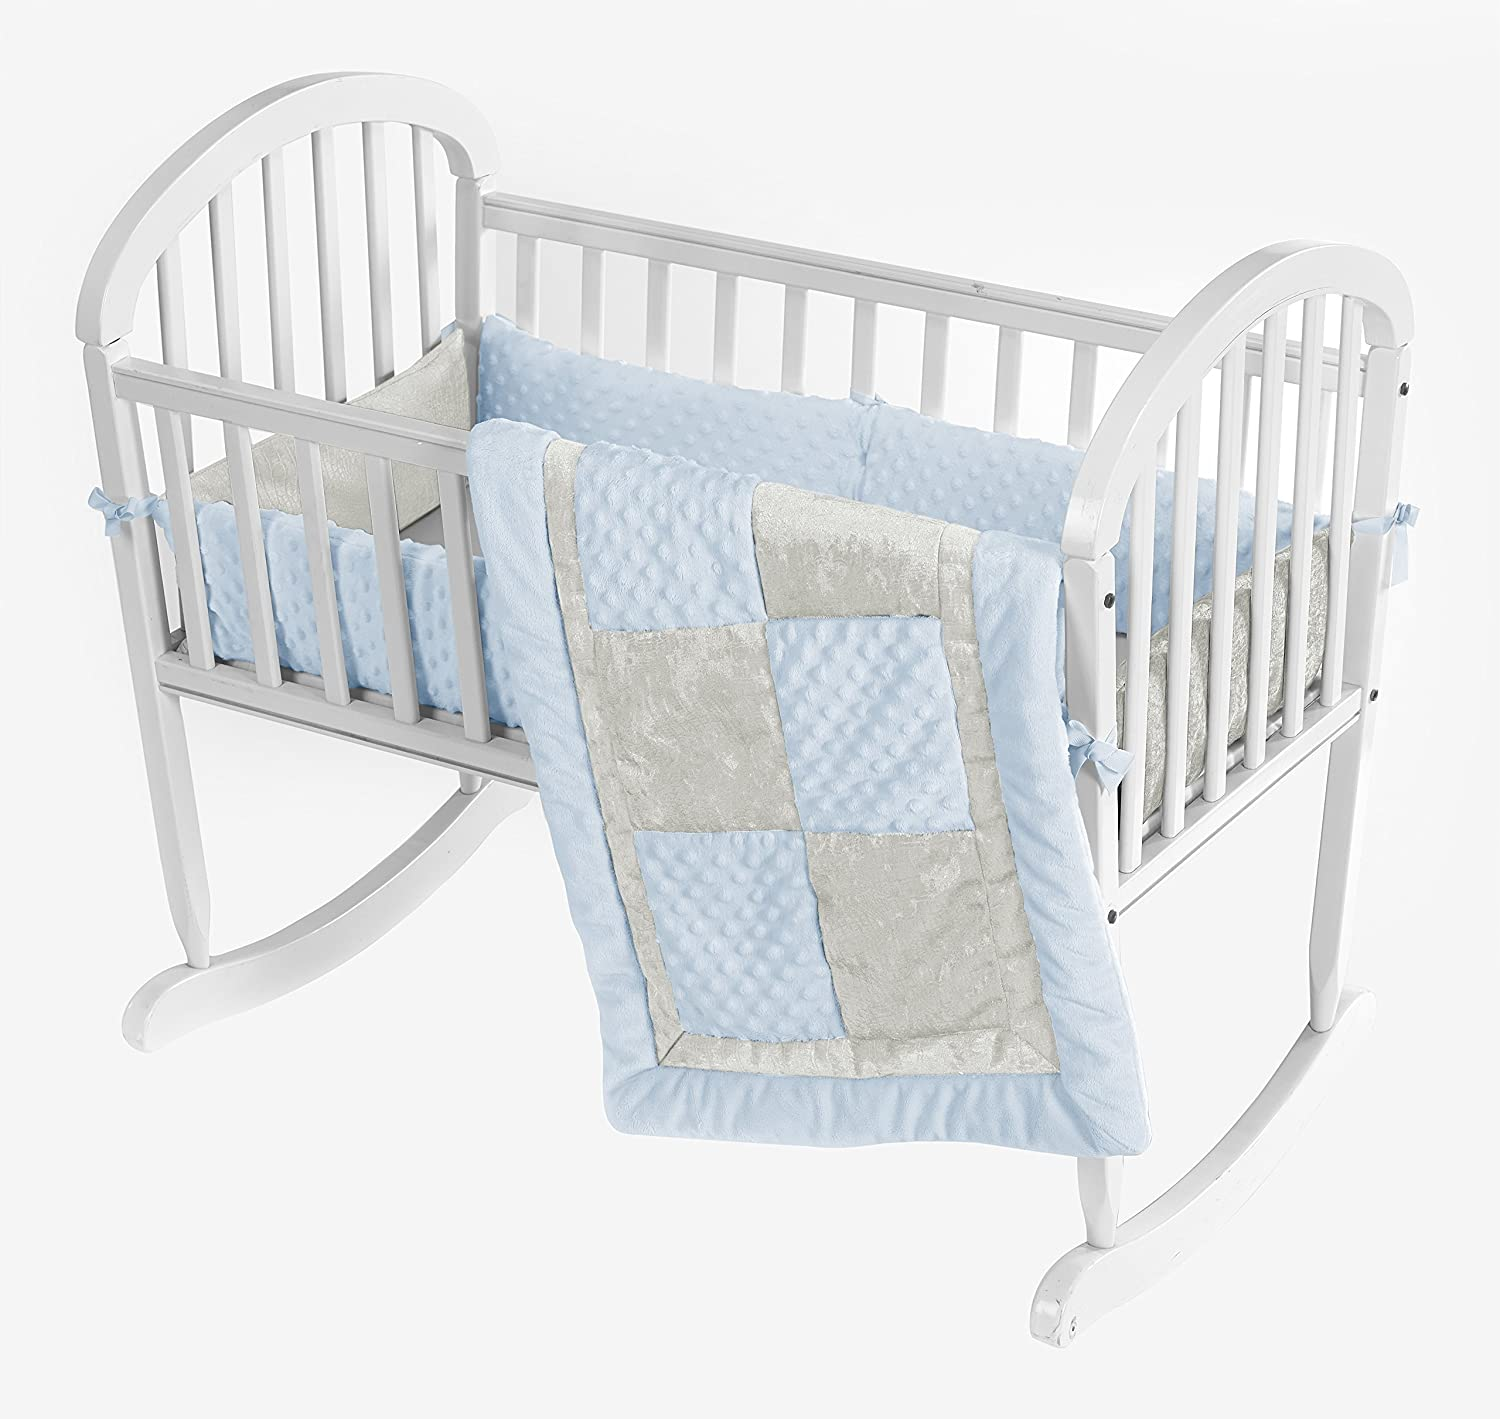 Baby Doll Croco Minky Cradle Bedding Set, Blue/Ivory by BabyDoll Bedding   B00KBGTQZS